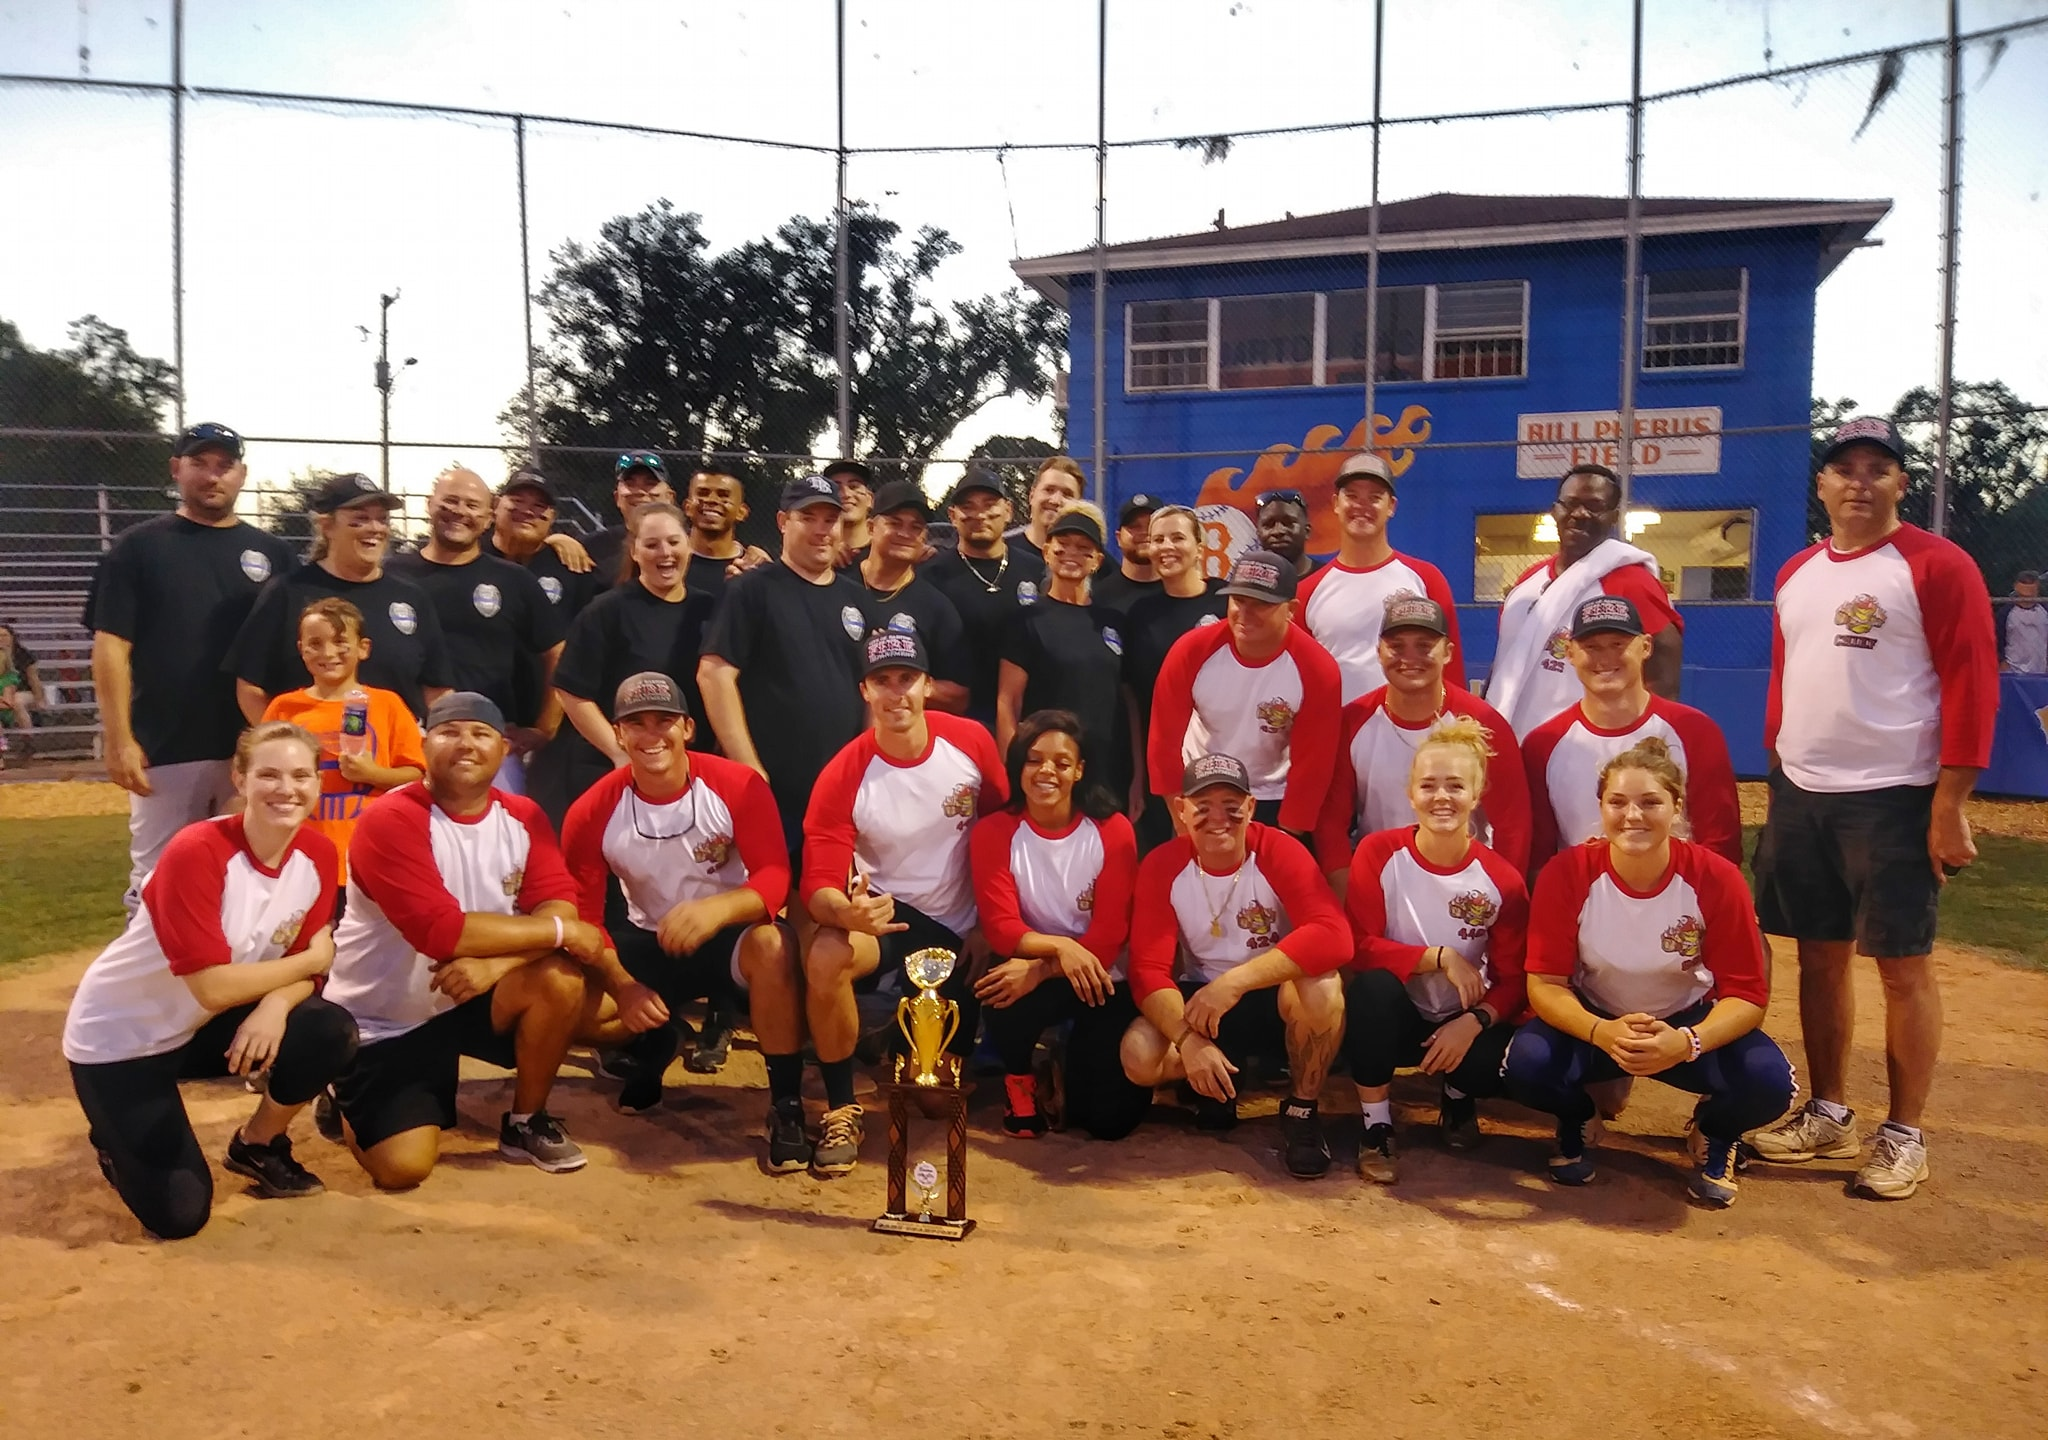 BARTOW - After the game, the winning Bartow Fire Deparment team, side by side, with the competing Bartow Police Department. Special thanks to Bartow High School for hosting this event. Monies and concessions are donated to the George W. Harris Youth Shelter, a shelter that provides temporary safe-haven to youths, ages 10-17, in need.